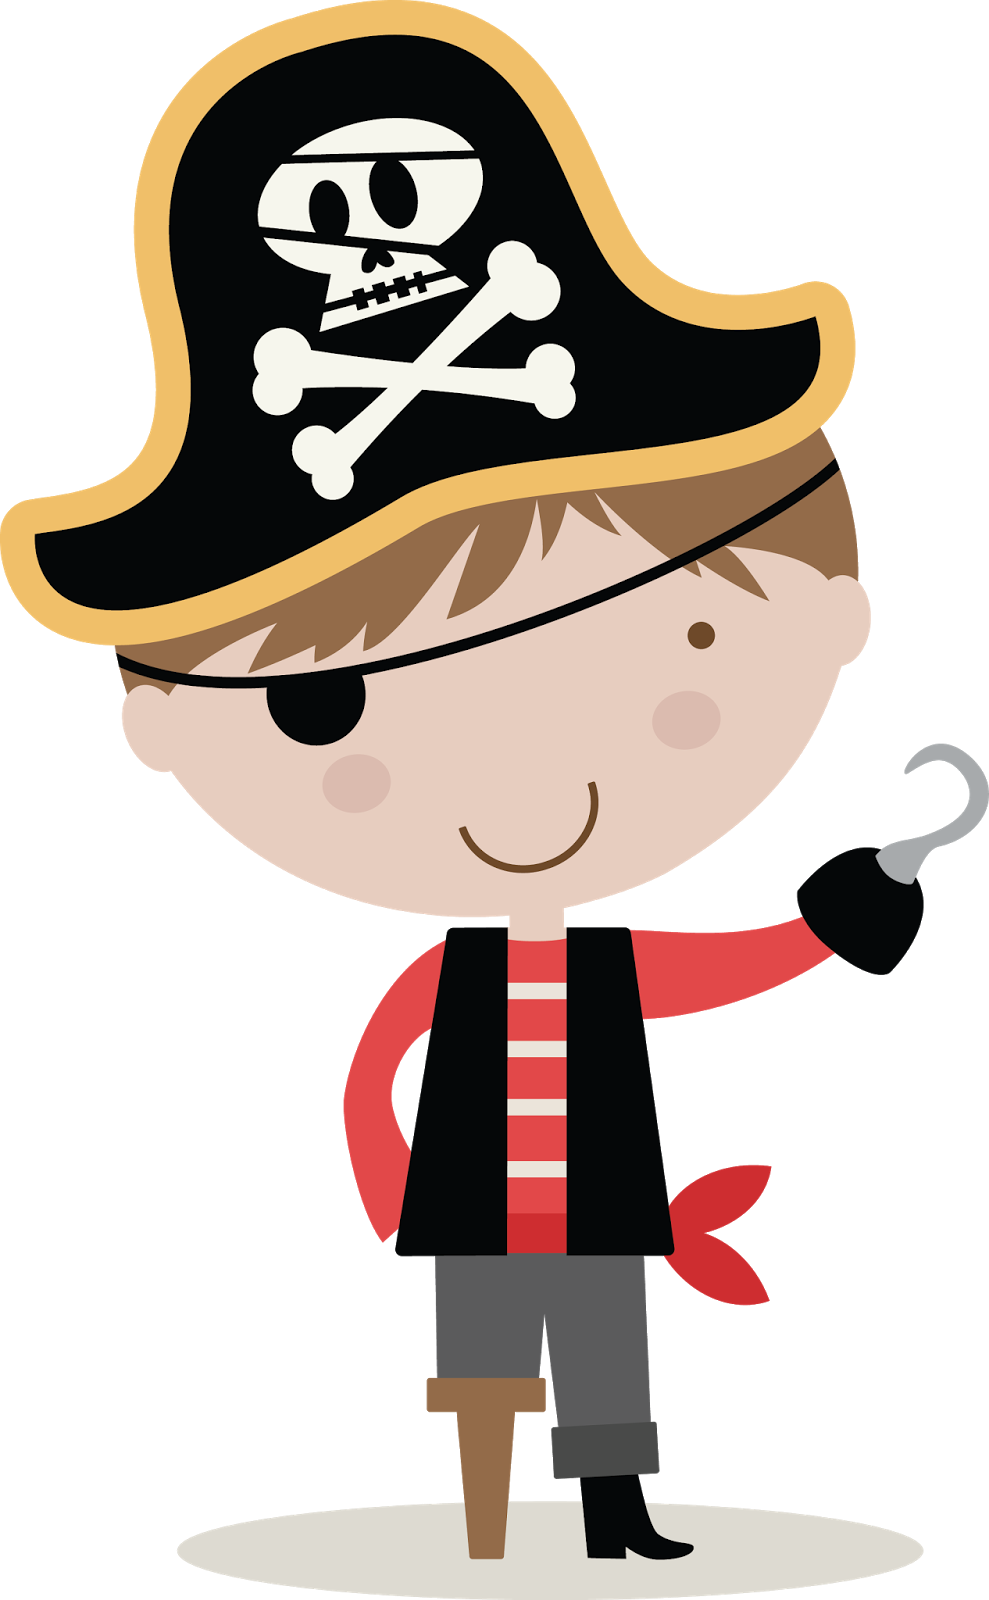 989x1600 Pirates Png Transparent Pirates.png Images. Pluspng